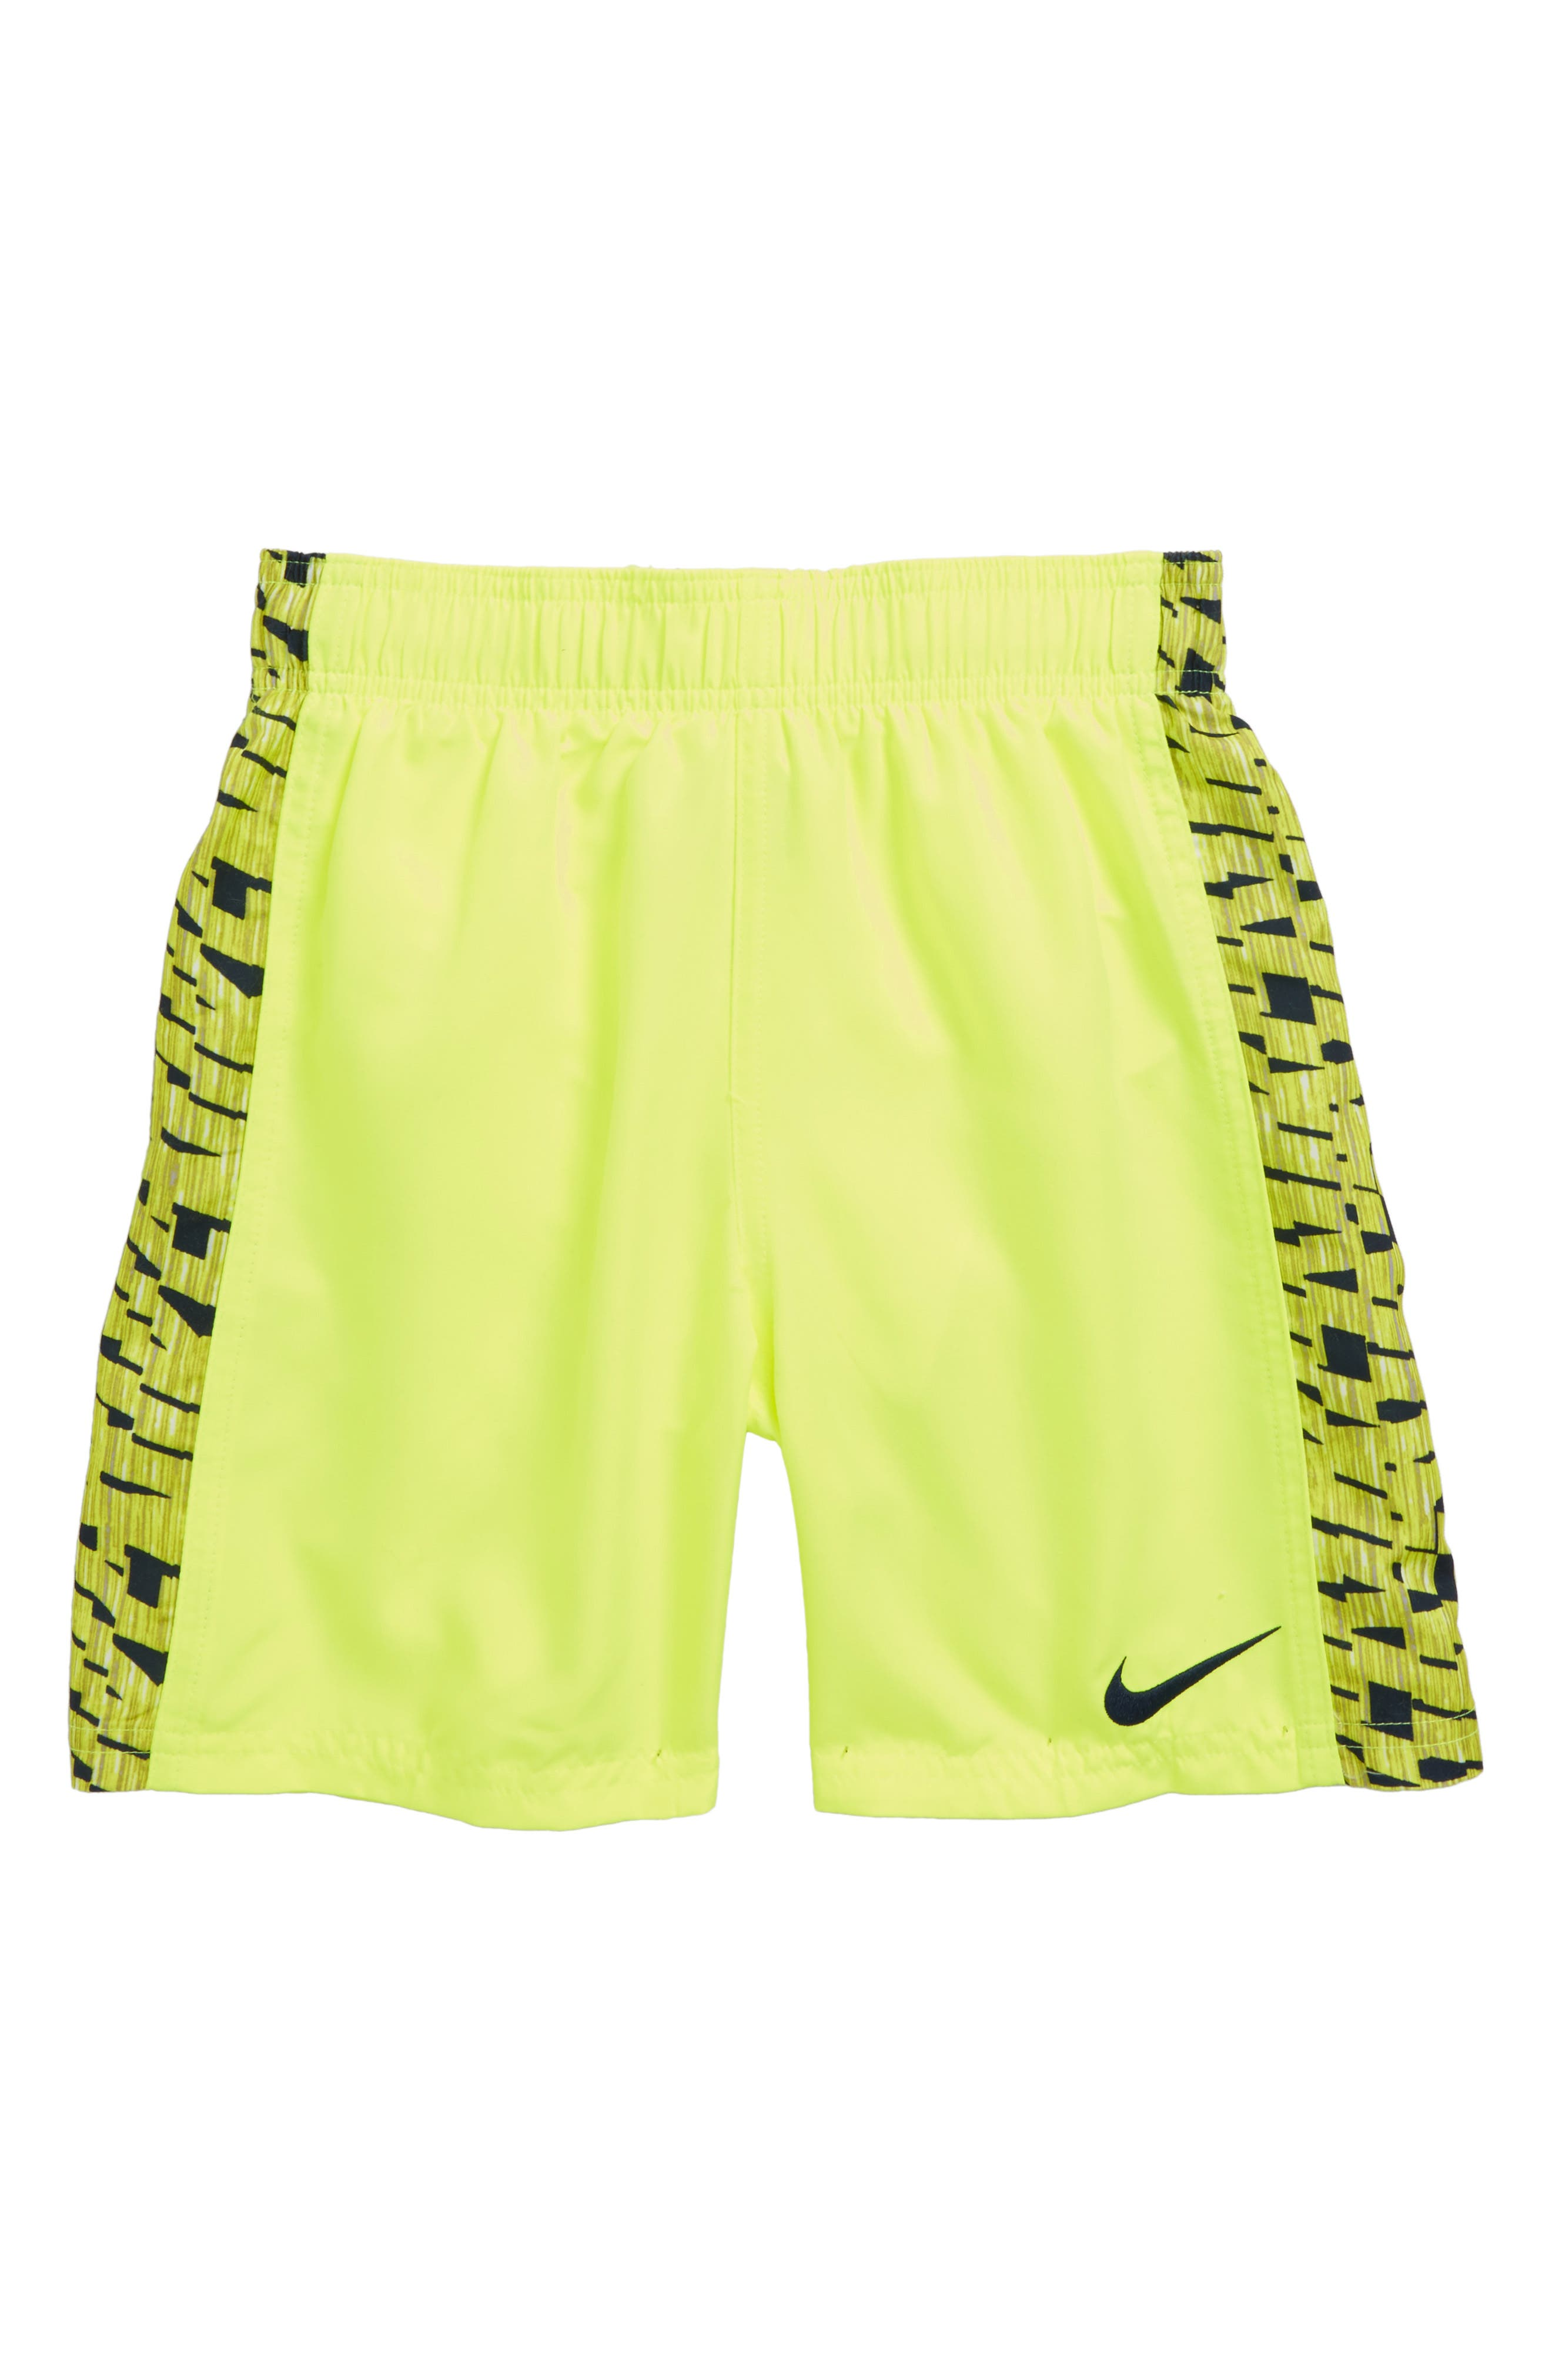 Alternate Image 1 Selected - Nike Racer Volley Shorts (Big Boys)